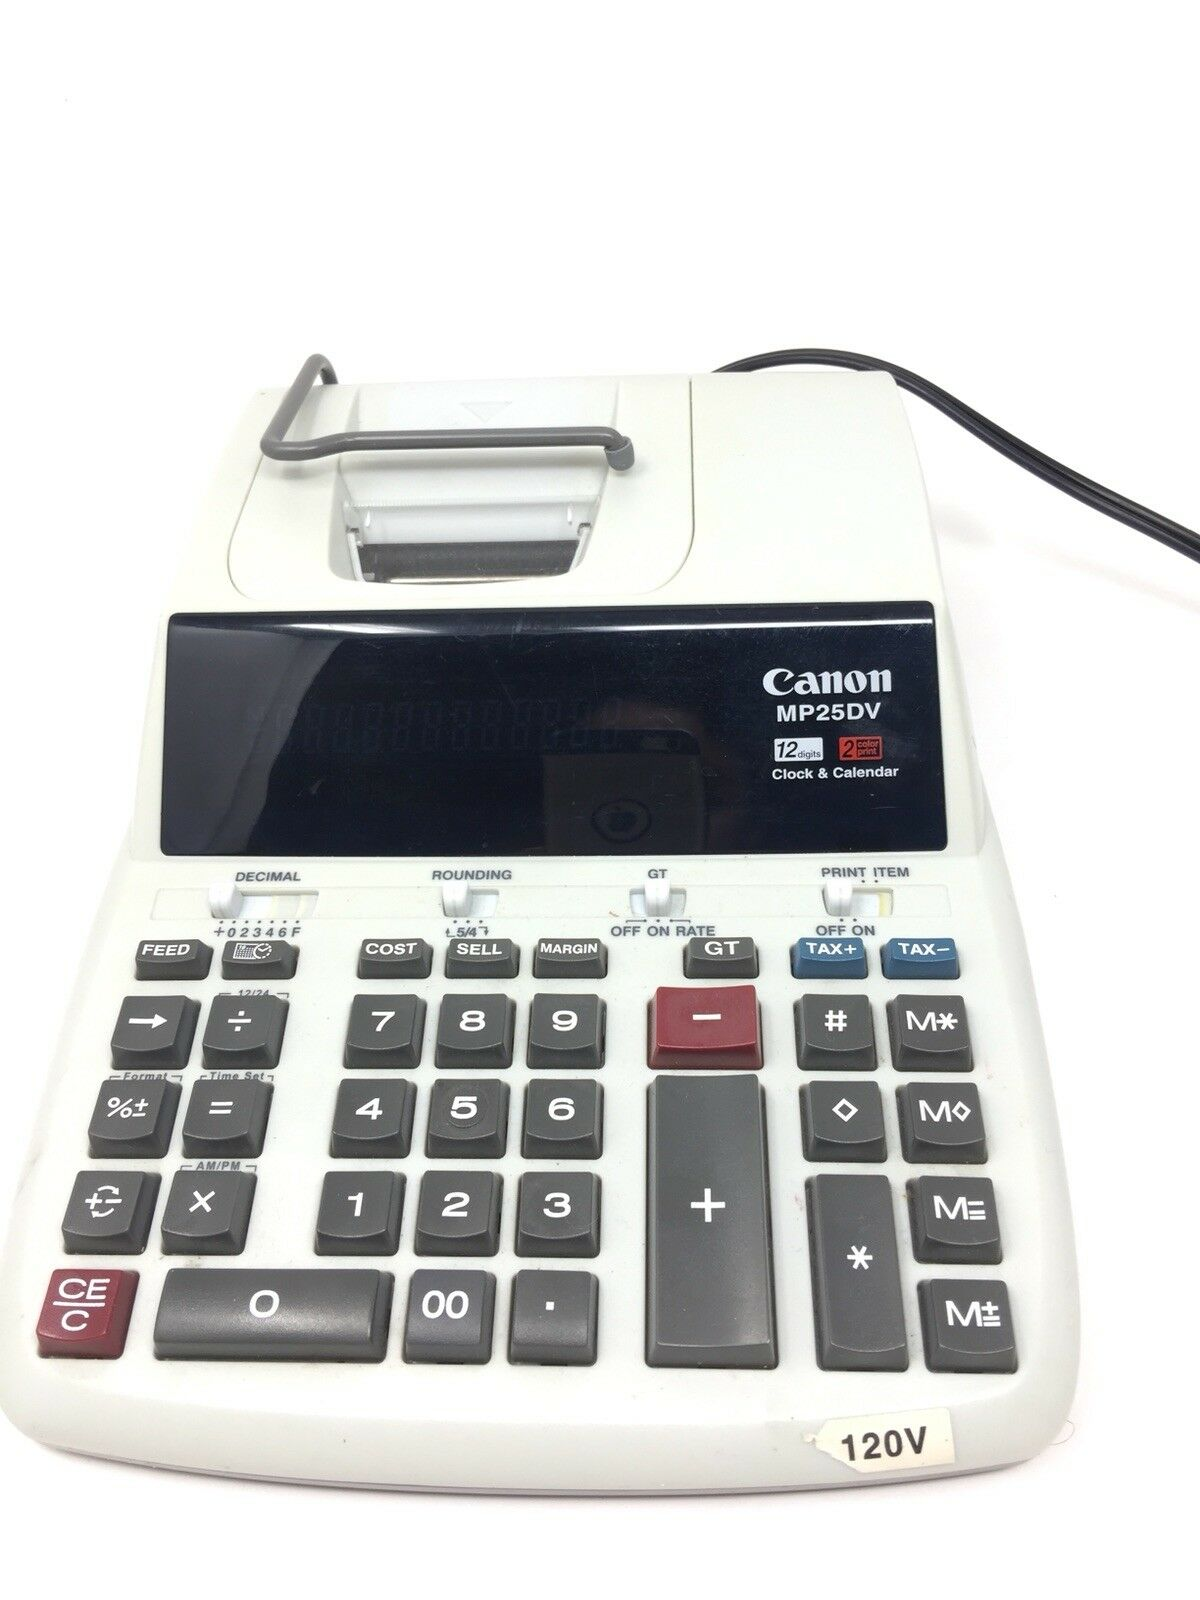 Canon Printing Calculator MP25DV 12-Digit Large Fluorescent Display Characters